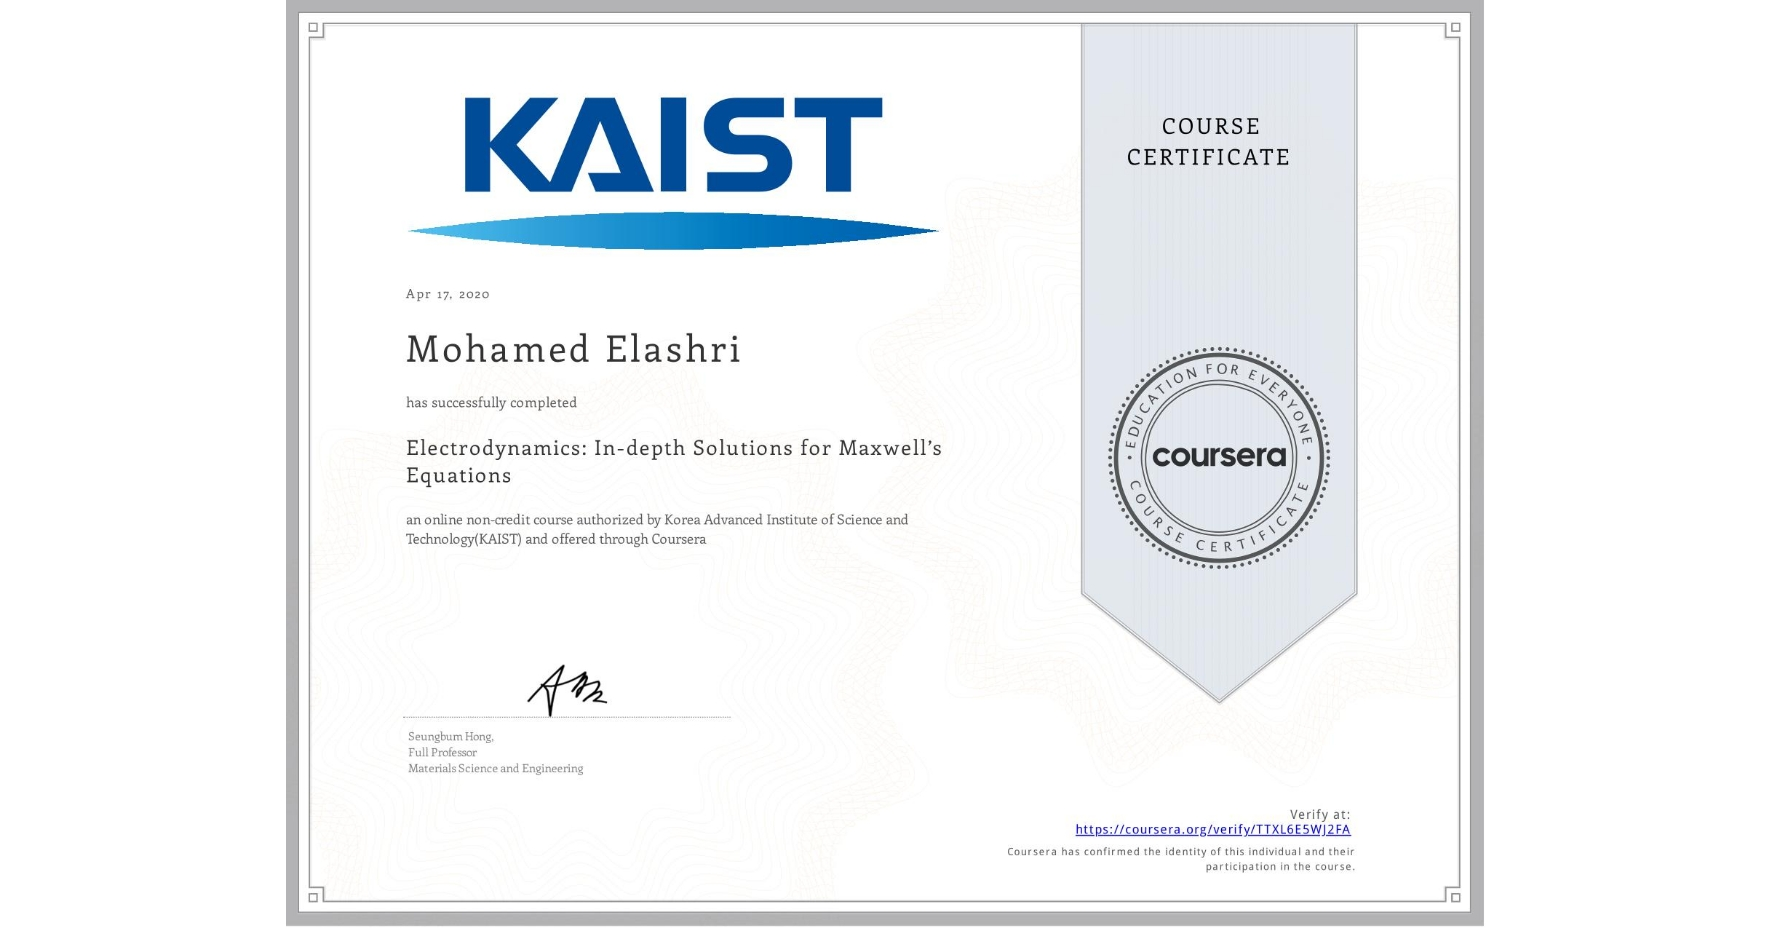 View certificate for Mohamed Elashri, Electrodynamics: In-depth Solutions for Maxwell's Equations, an online non-credit course authorized by Korea Advanced Institute of Science and Technology(KAIST) and offered through Coursera